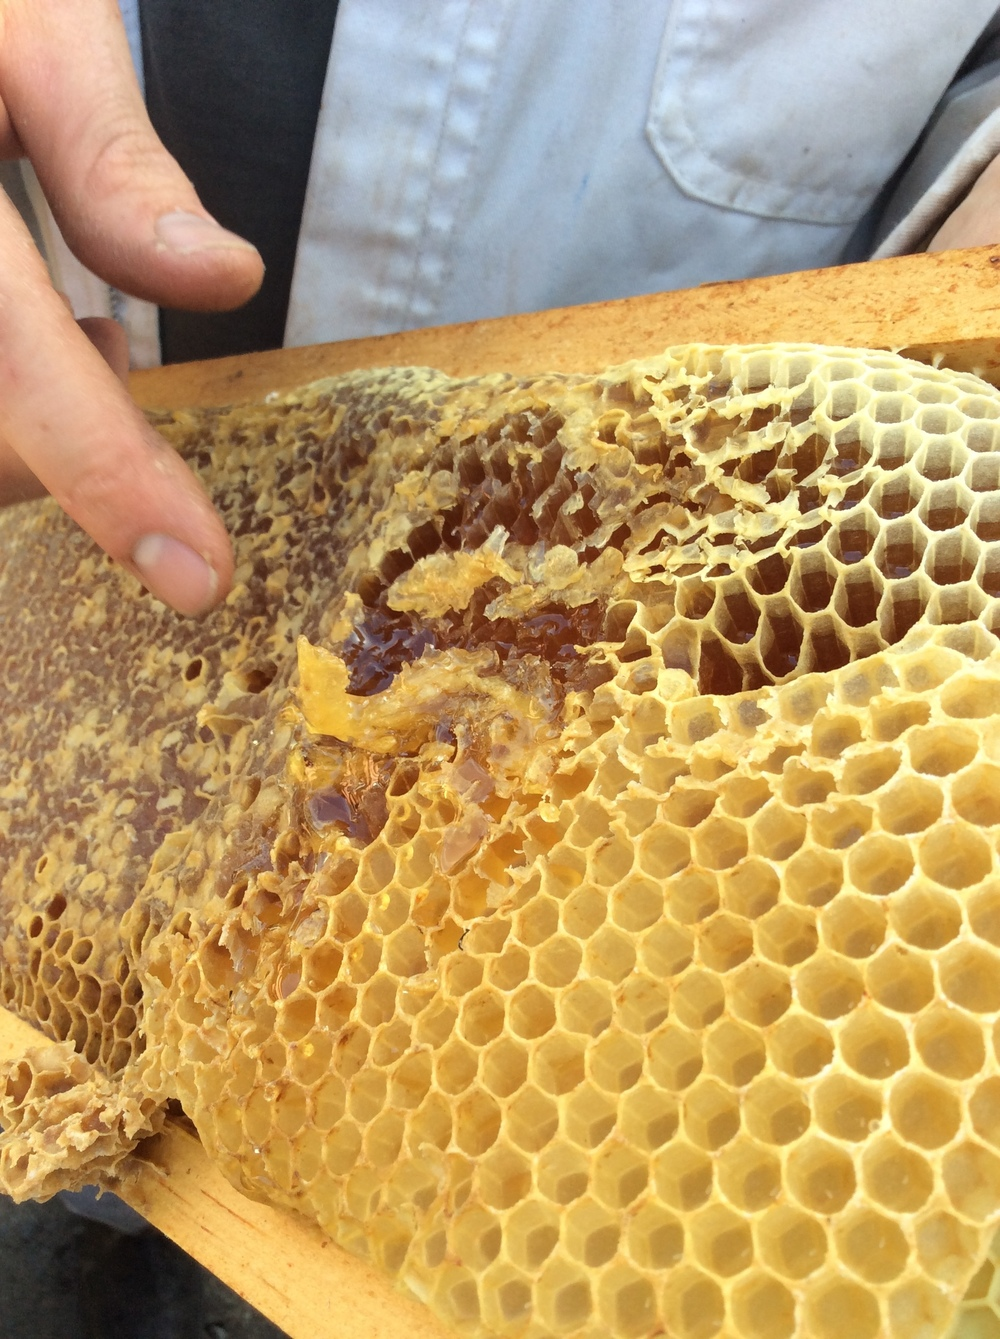 Beekeeping on the Coast with Mike Turner of Marin Coastal Bee Company